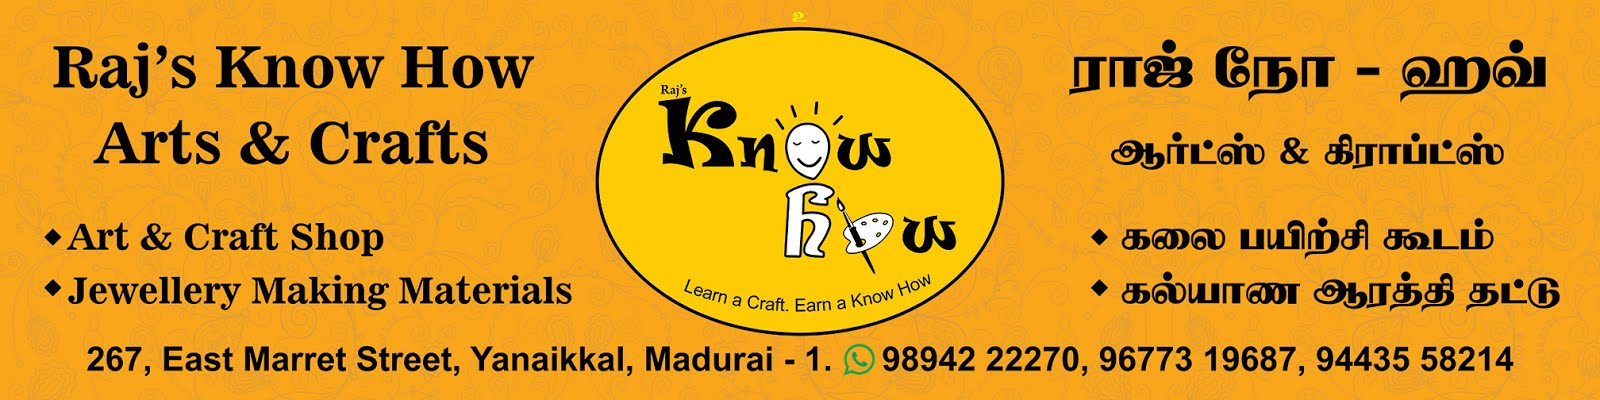 Art and craft classes in madurai